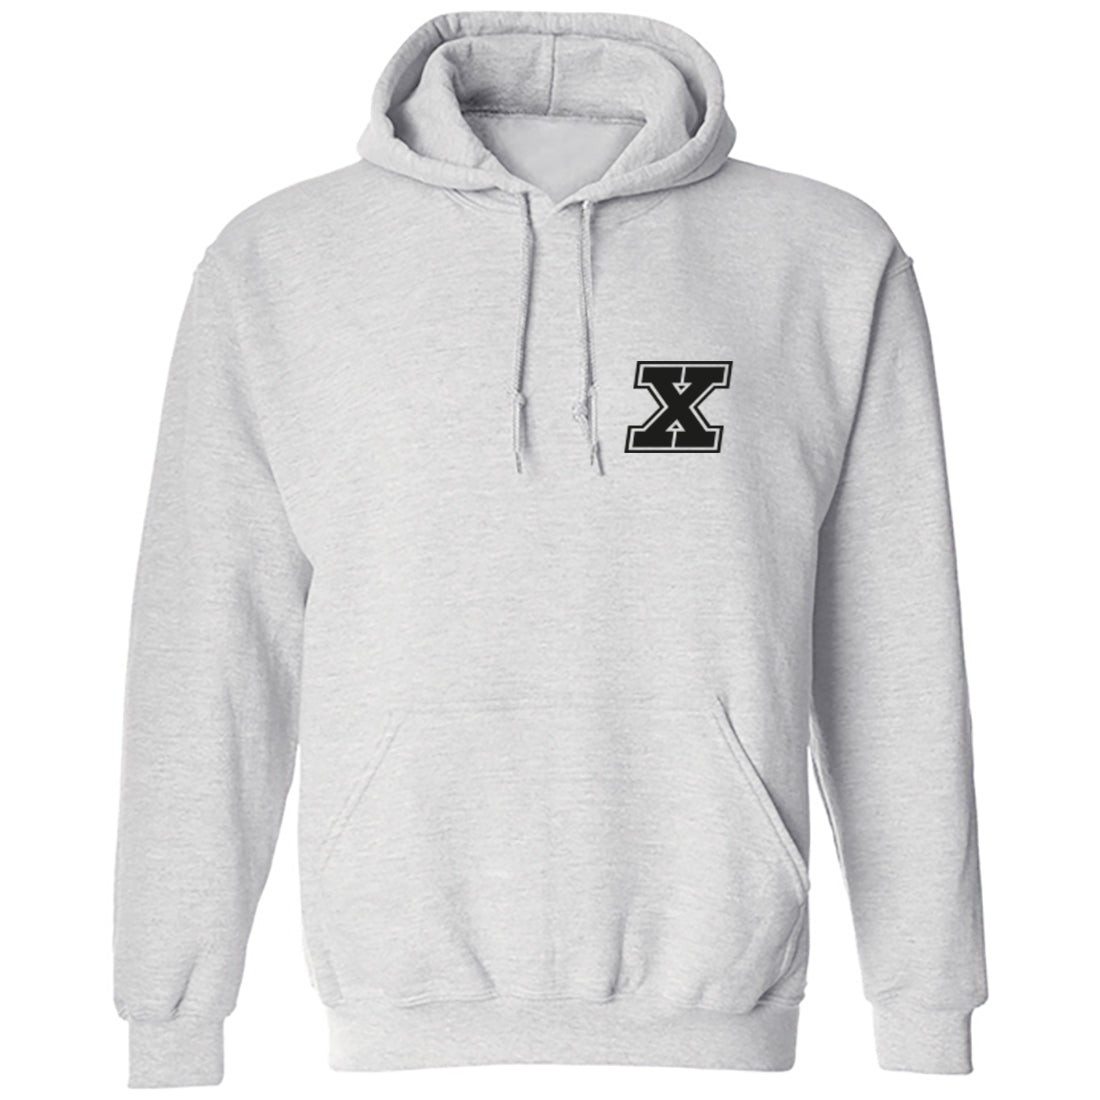 Initial 'X' Pocket Print Unisex Hoodie K0940 - Illustrated Identity Ltd.